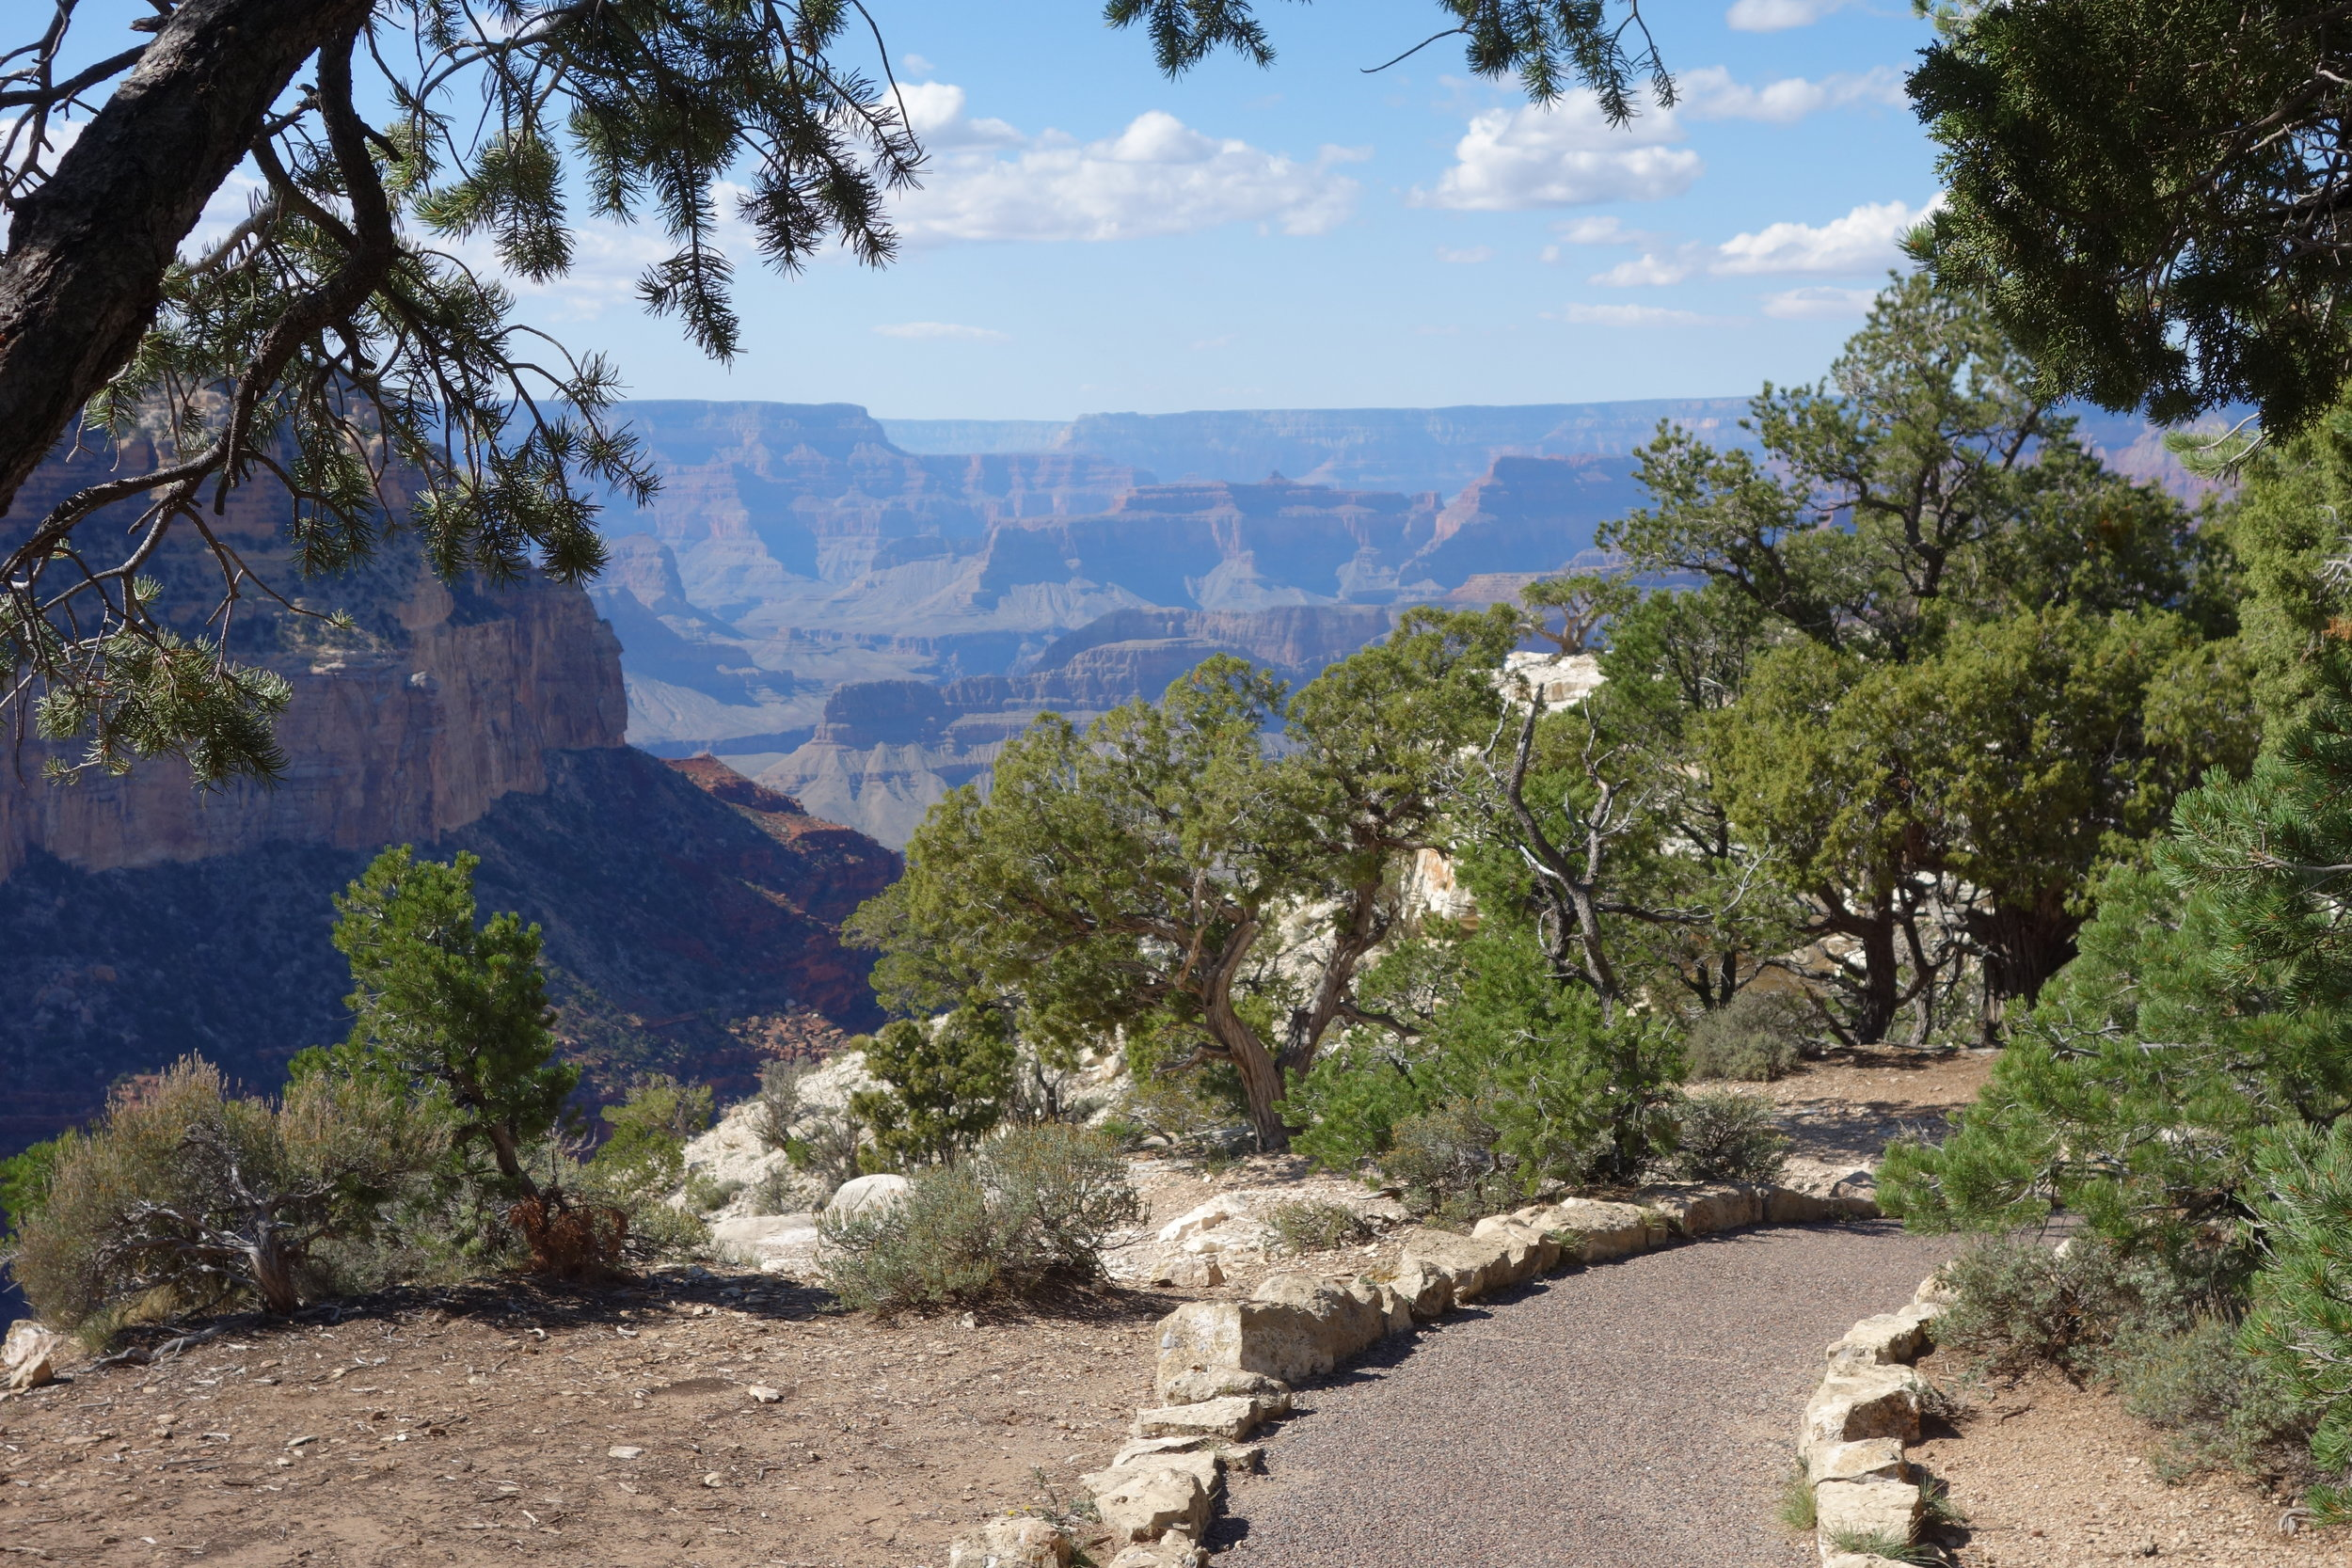 The Grand Canyon Rim Trail can be accessed at many points, and the park shuttle bus system provides a convenient way to return to your starting point.